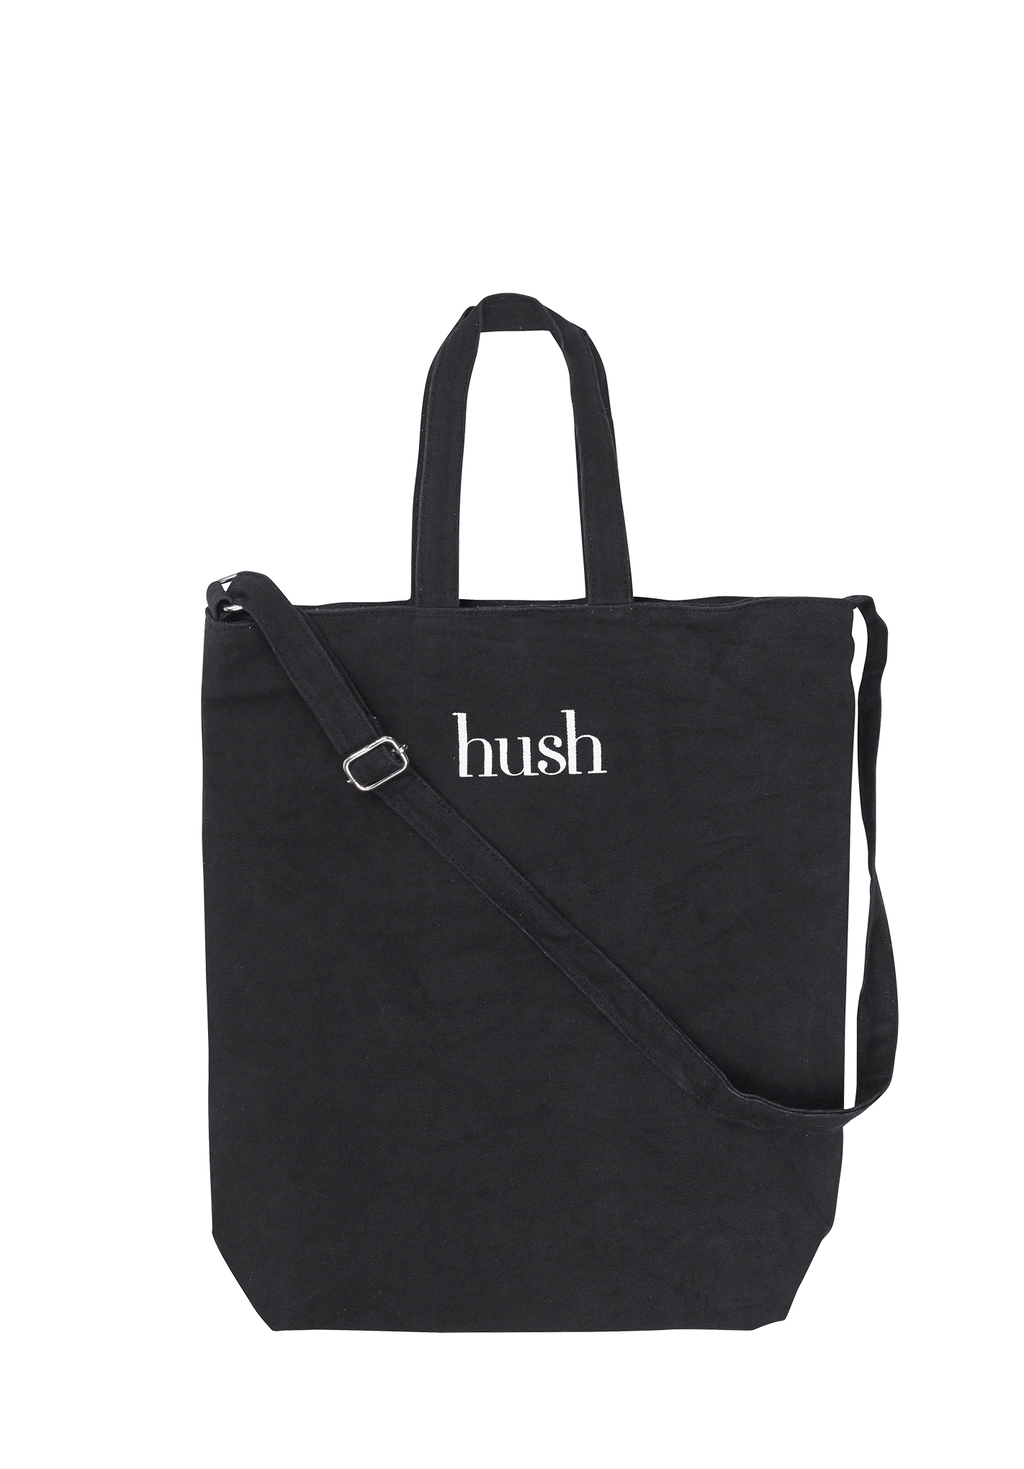 Canvas Shopper - predominant colour: black; occasions: casual; type of pattern: light; style: tote; length: handle; size: standard; material: fabric; finish: plain; pattern: patterned/print; season: s/s 2016; wardrobe: highlight